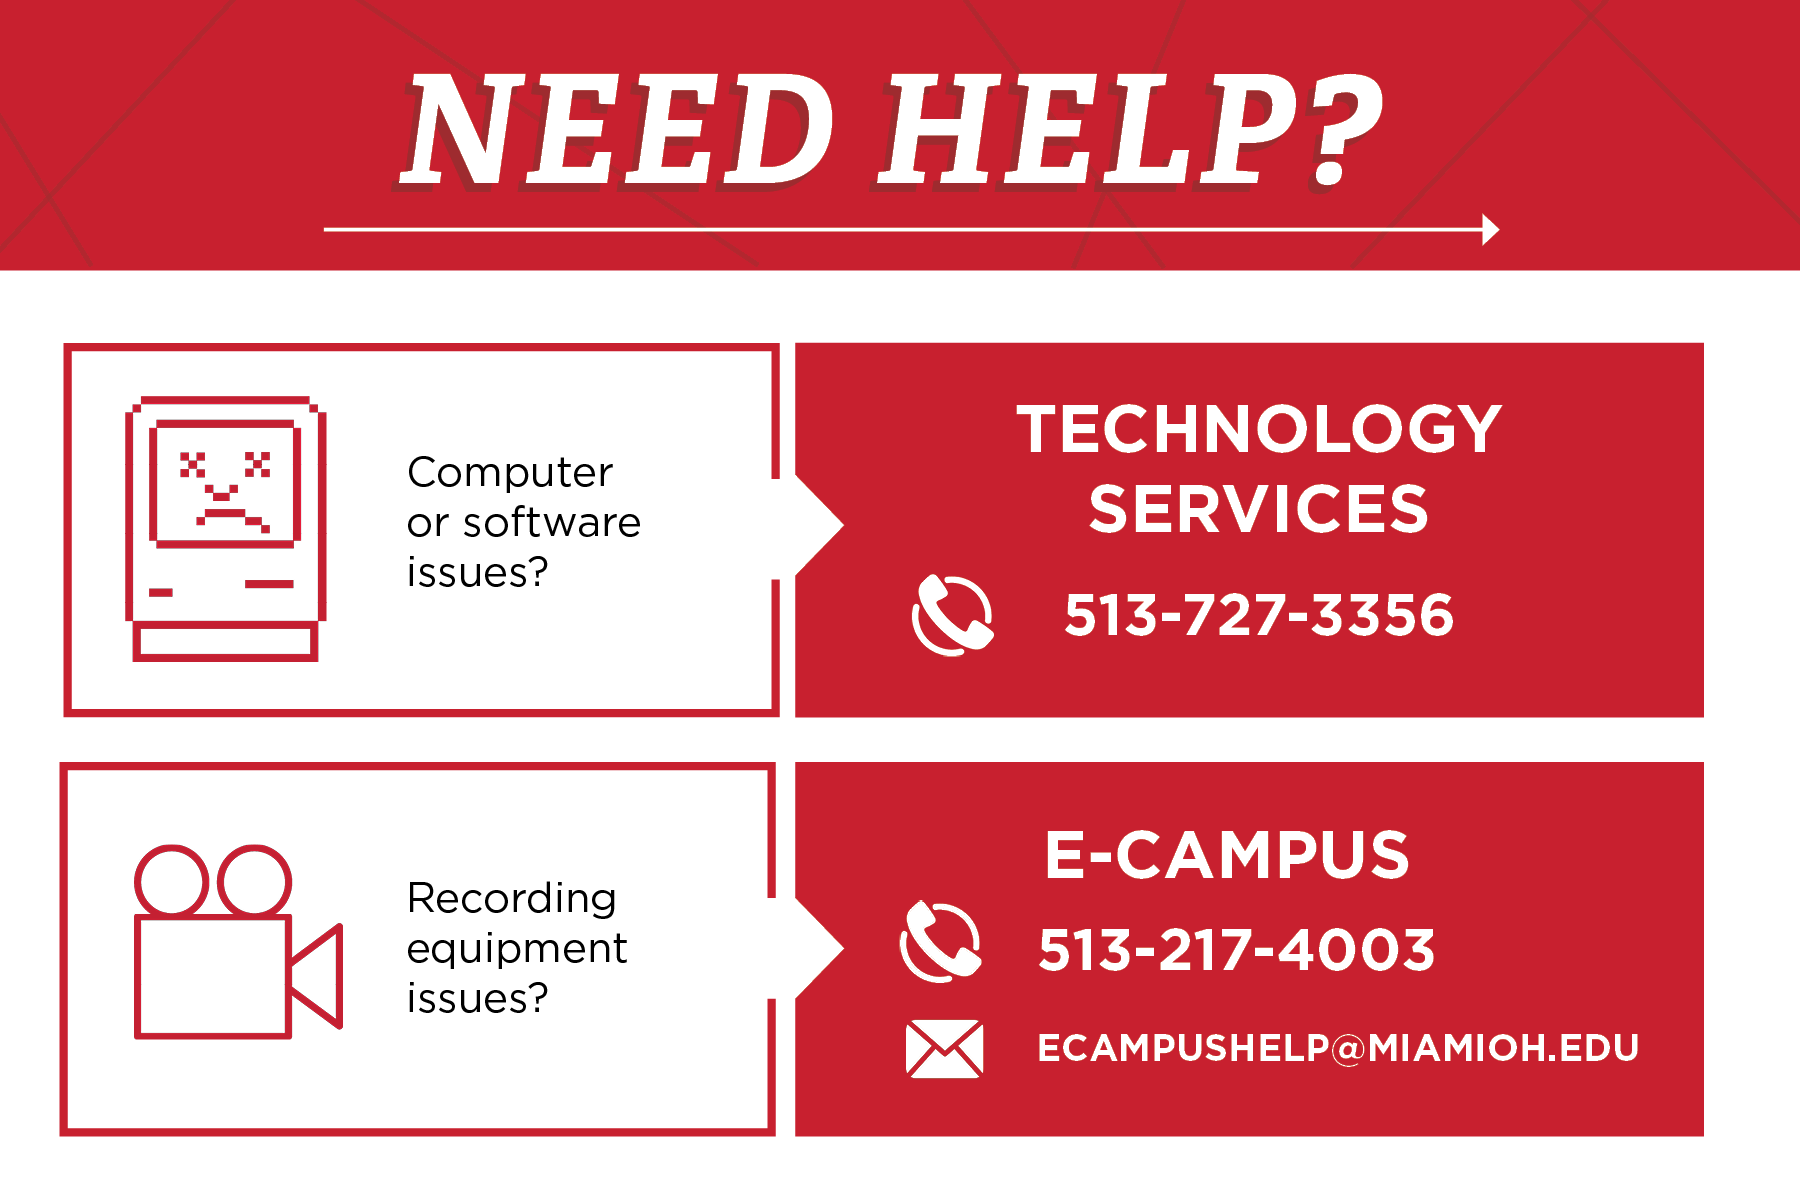 Need Help? Computer or software issues - Technology Services 513-727-3356, Recording equipment issues - E-Campus 513-217-4003, ecampushelp@miamioh.edu